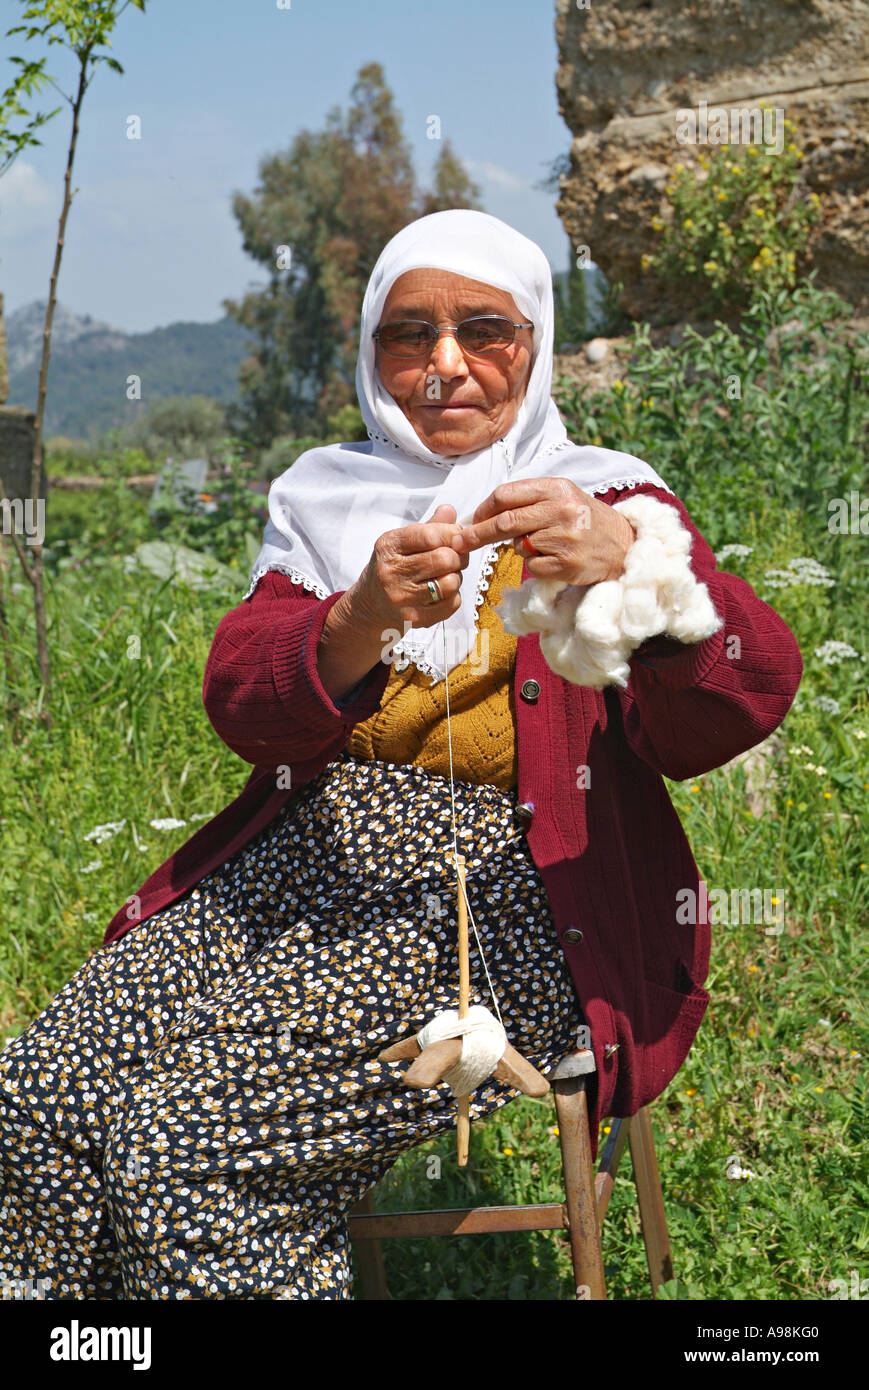 Turkish woman wearing a headcloth and spinning thread in the time honoured fashion Rural village near Antalya Turkey - Stock Image